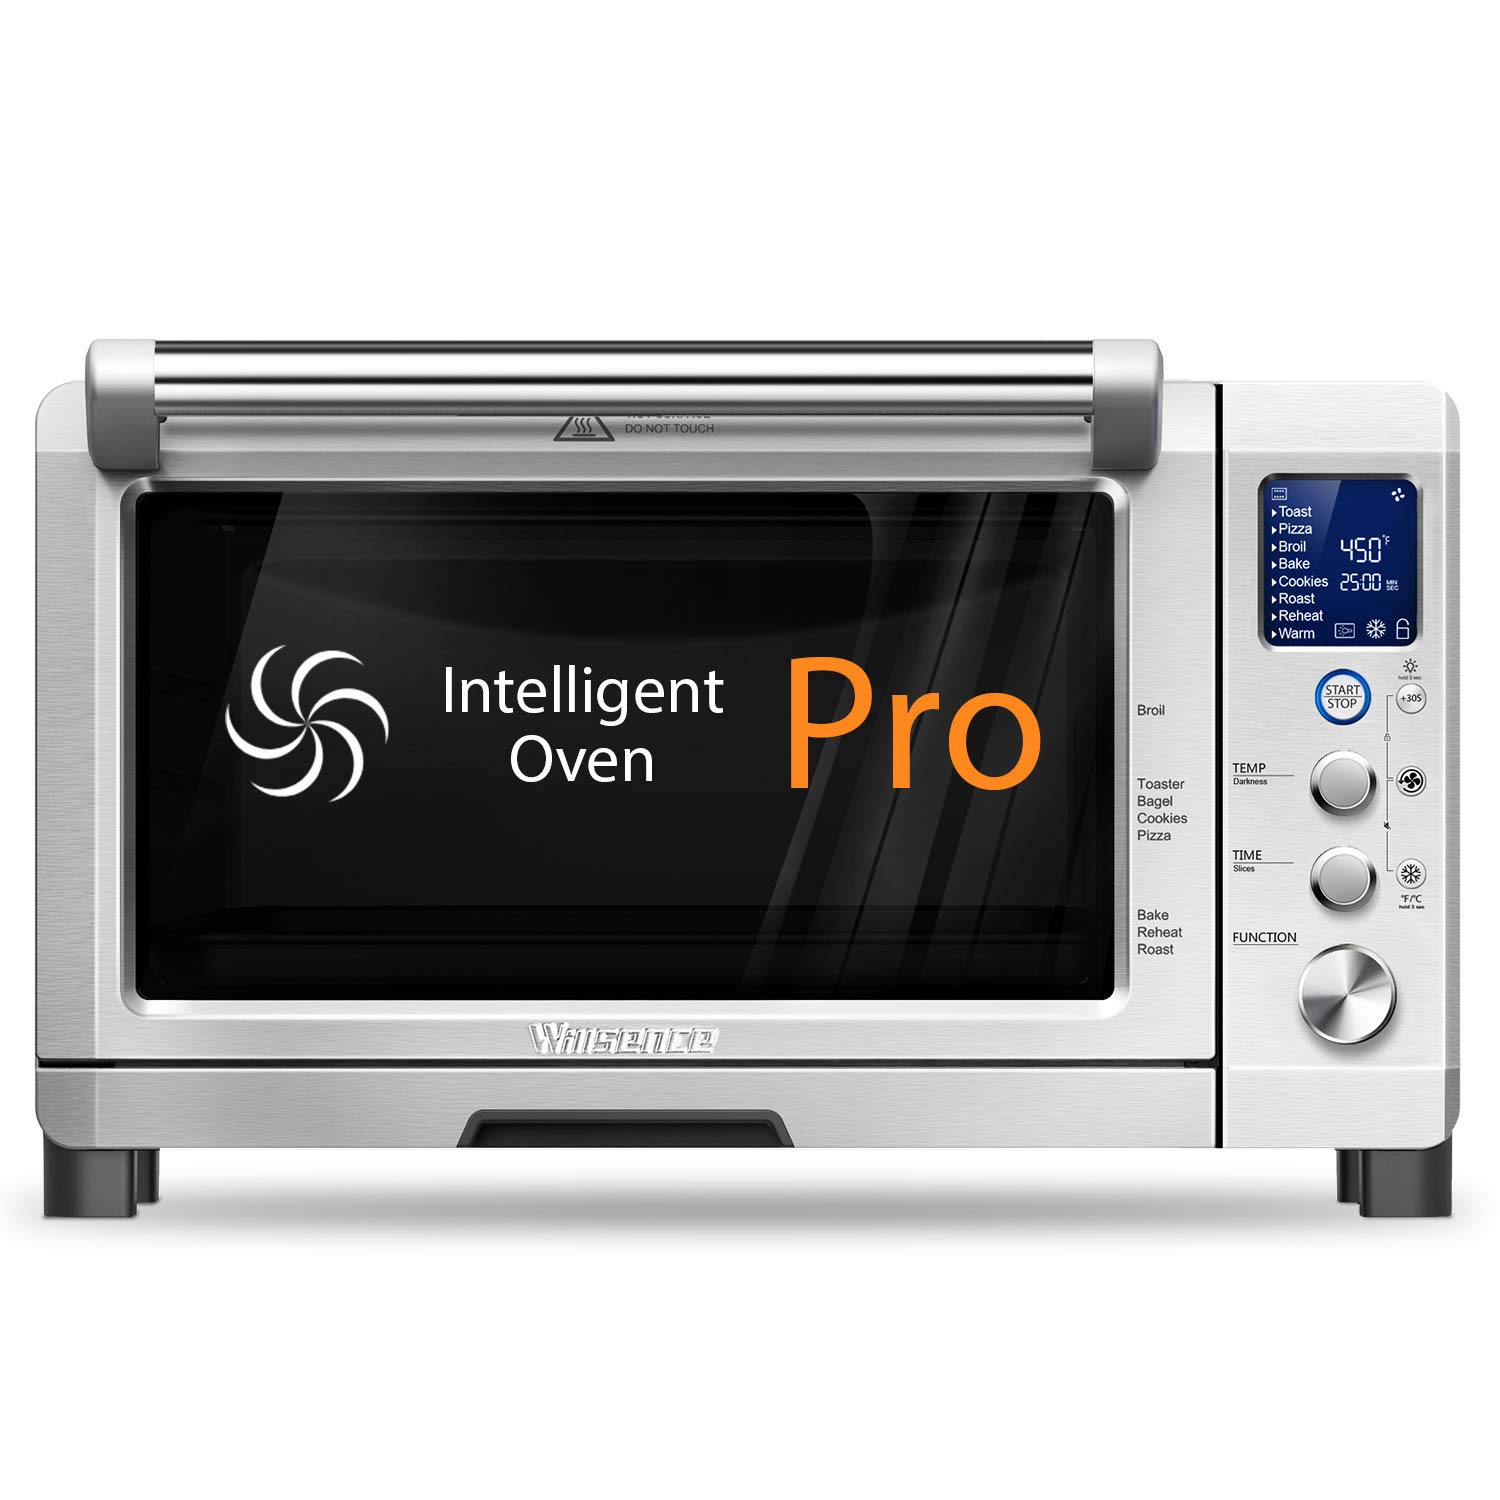 Toaster Oven Willsence Convection Toaster Oven with LCD Display and Element IQ, 6 Slice Toaster Oven with 9 Pre-set Cooking Functions, Brushed Stainless Steel,1800W